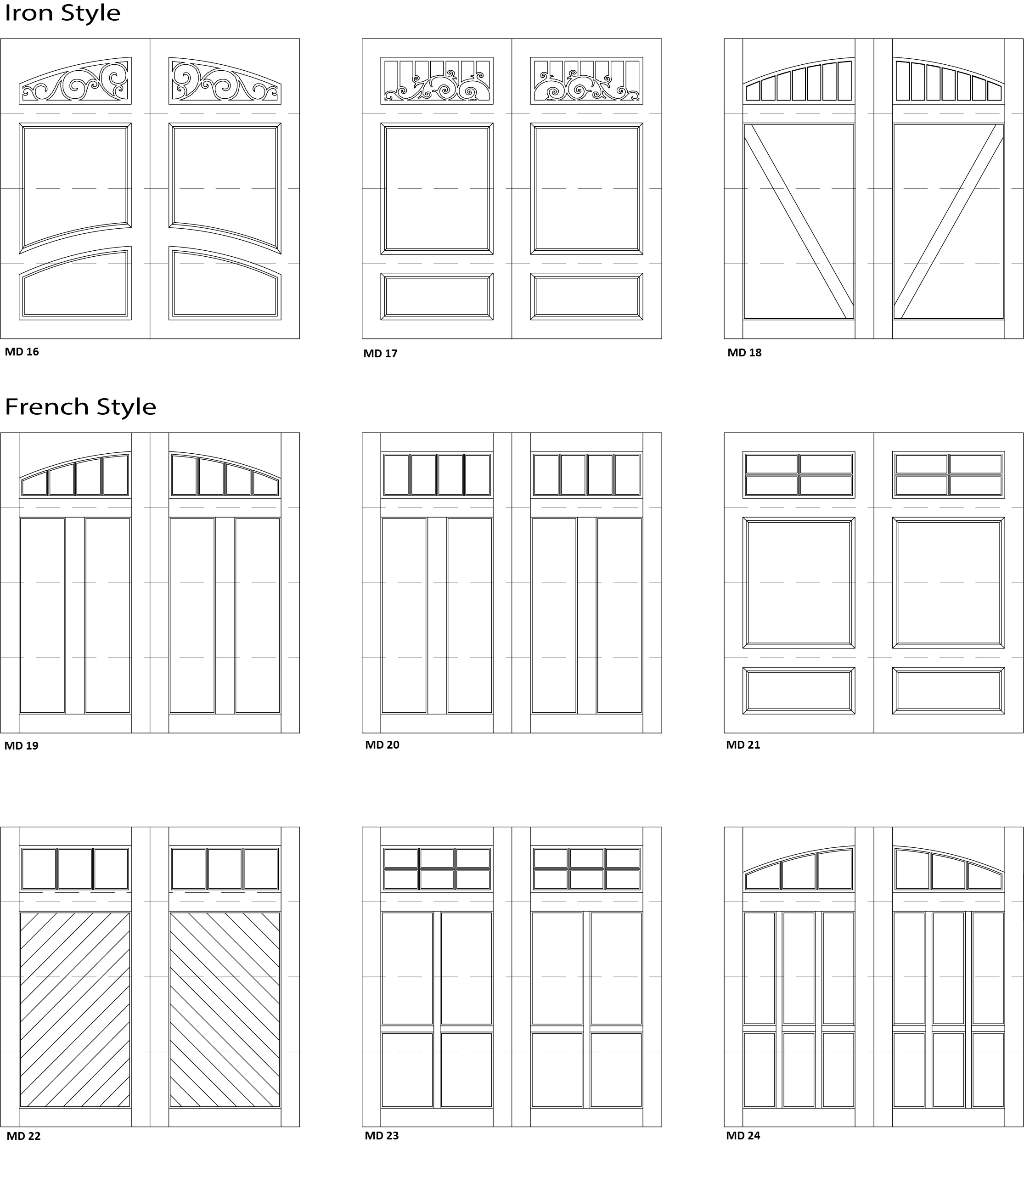 Garage 2 Door Designs - Customizable Size, Shape and Styles Based on Preference